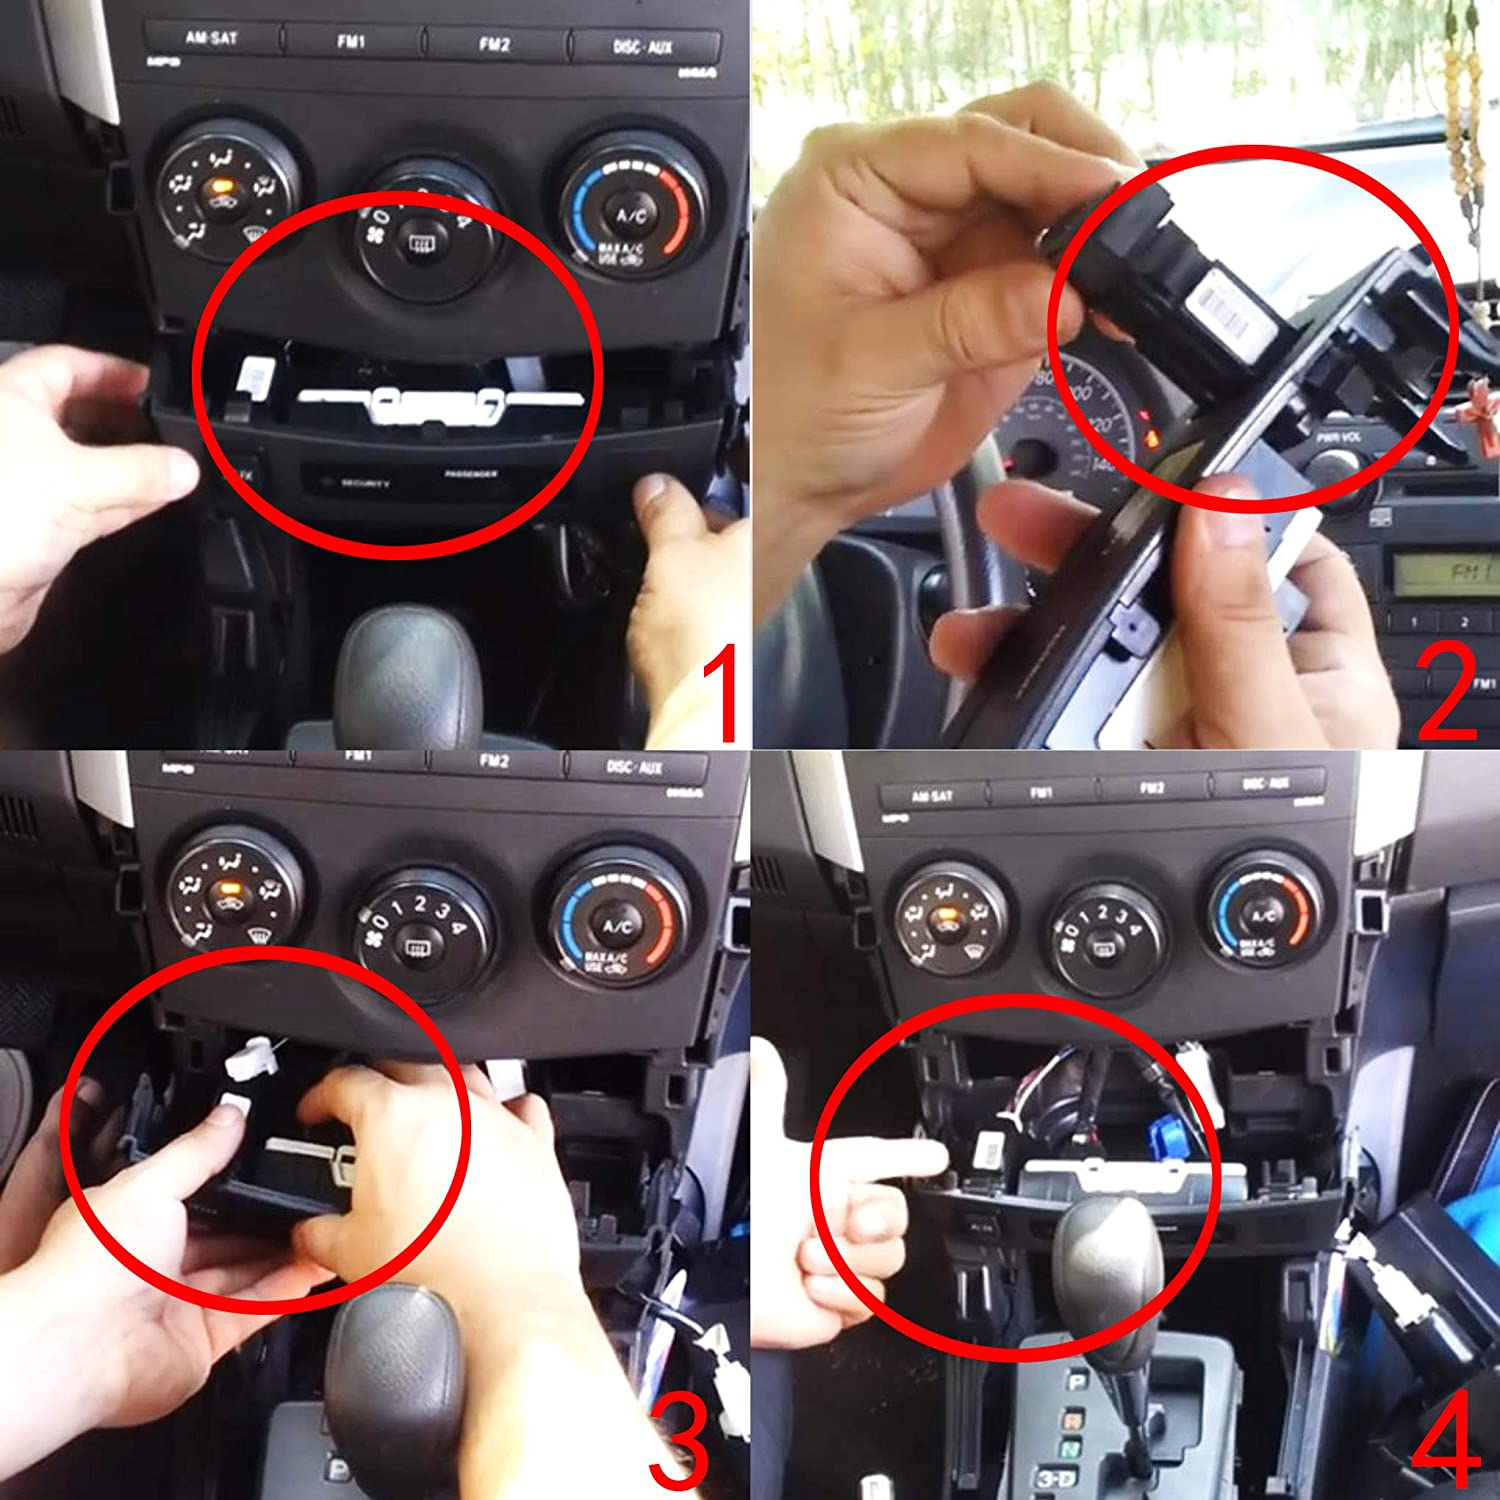 Toyota Aux Port 86190-02010 Corolla Jack Tundra Aux Auxiliary Input Adapter Audio Repair Parts Replacement Car Radio Kit for Camry RAV4 Tacoma Highlander Sienna Matrix 2007-2015